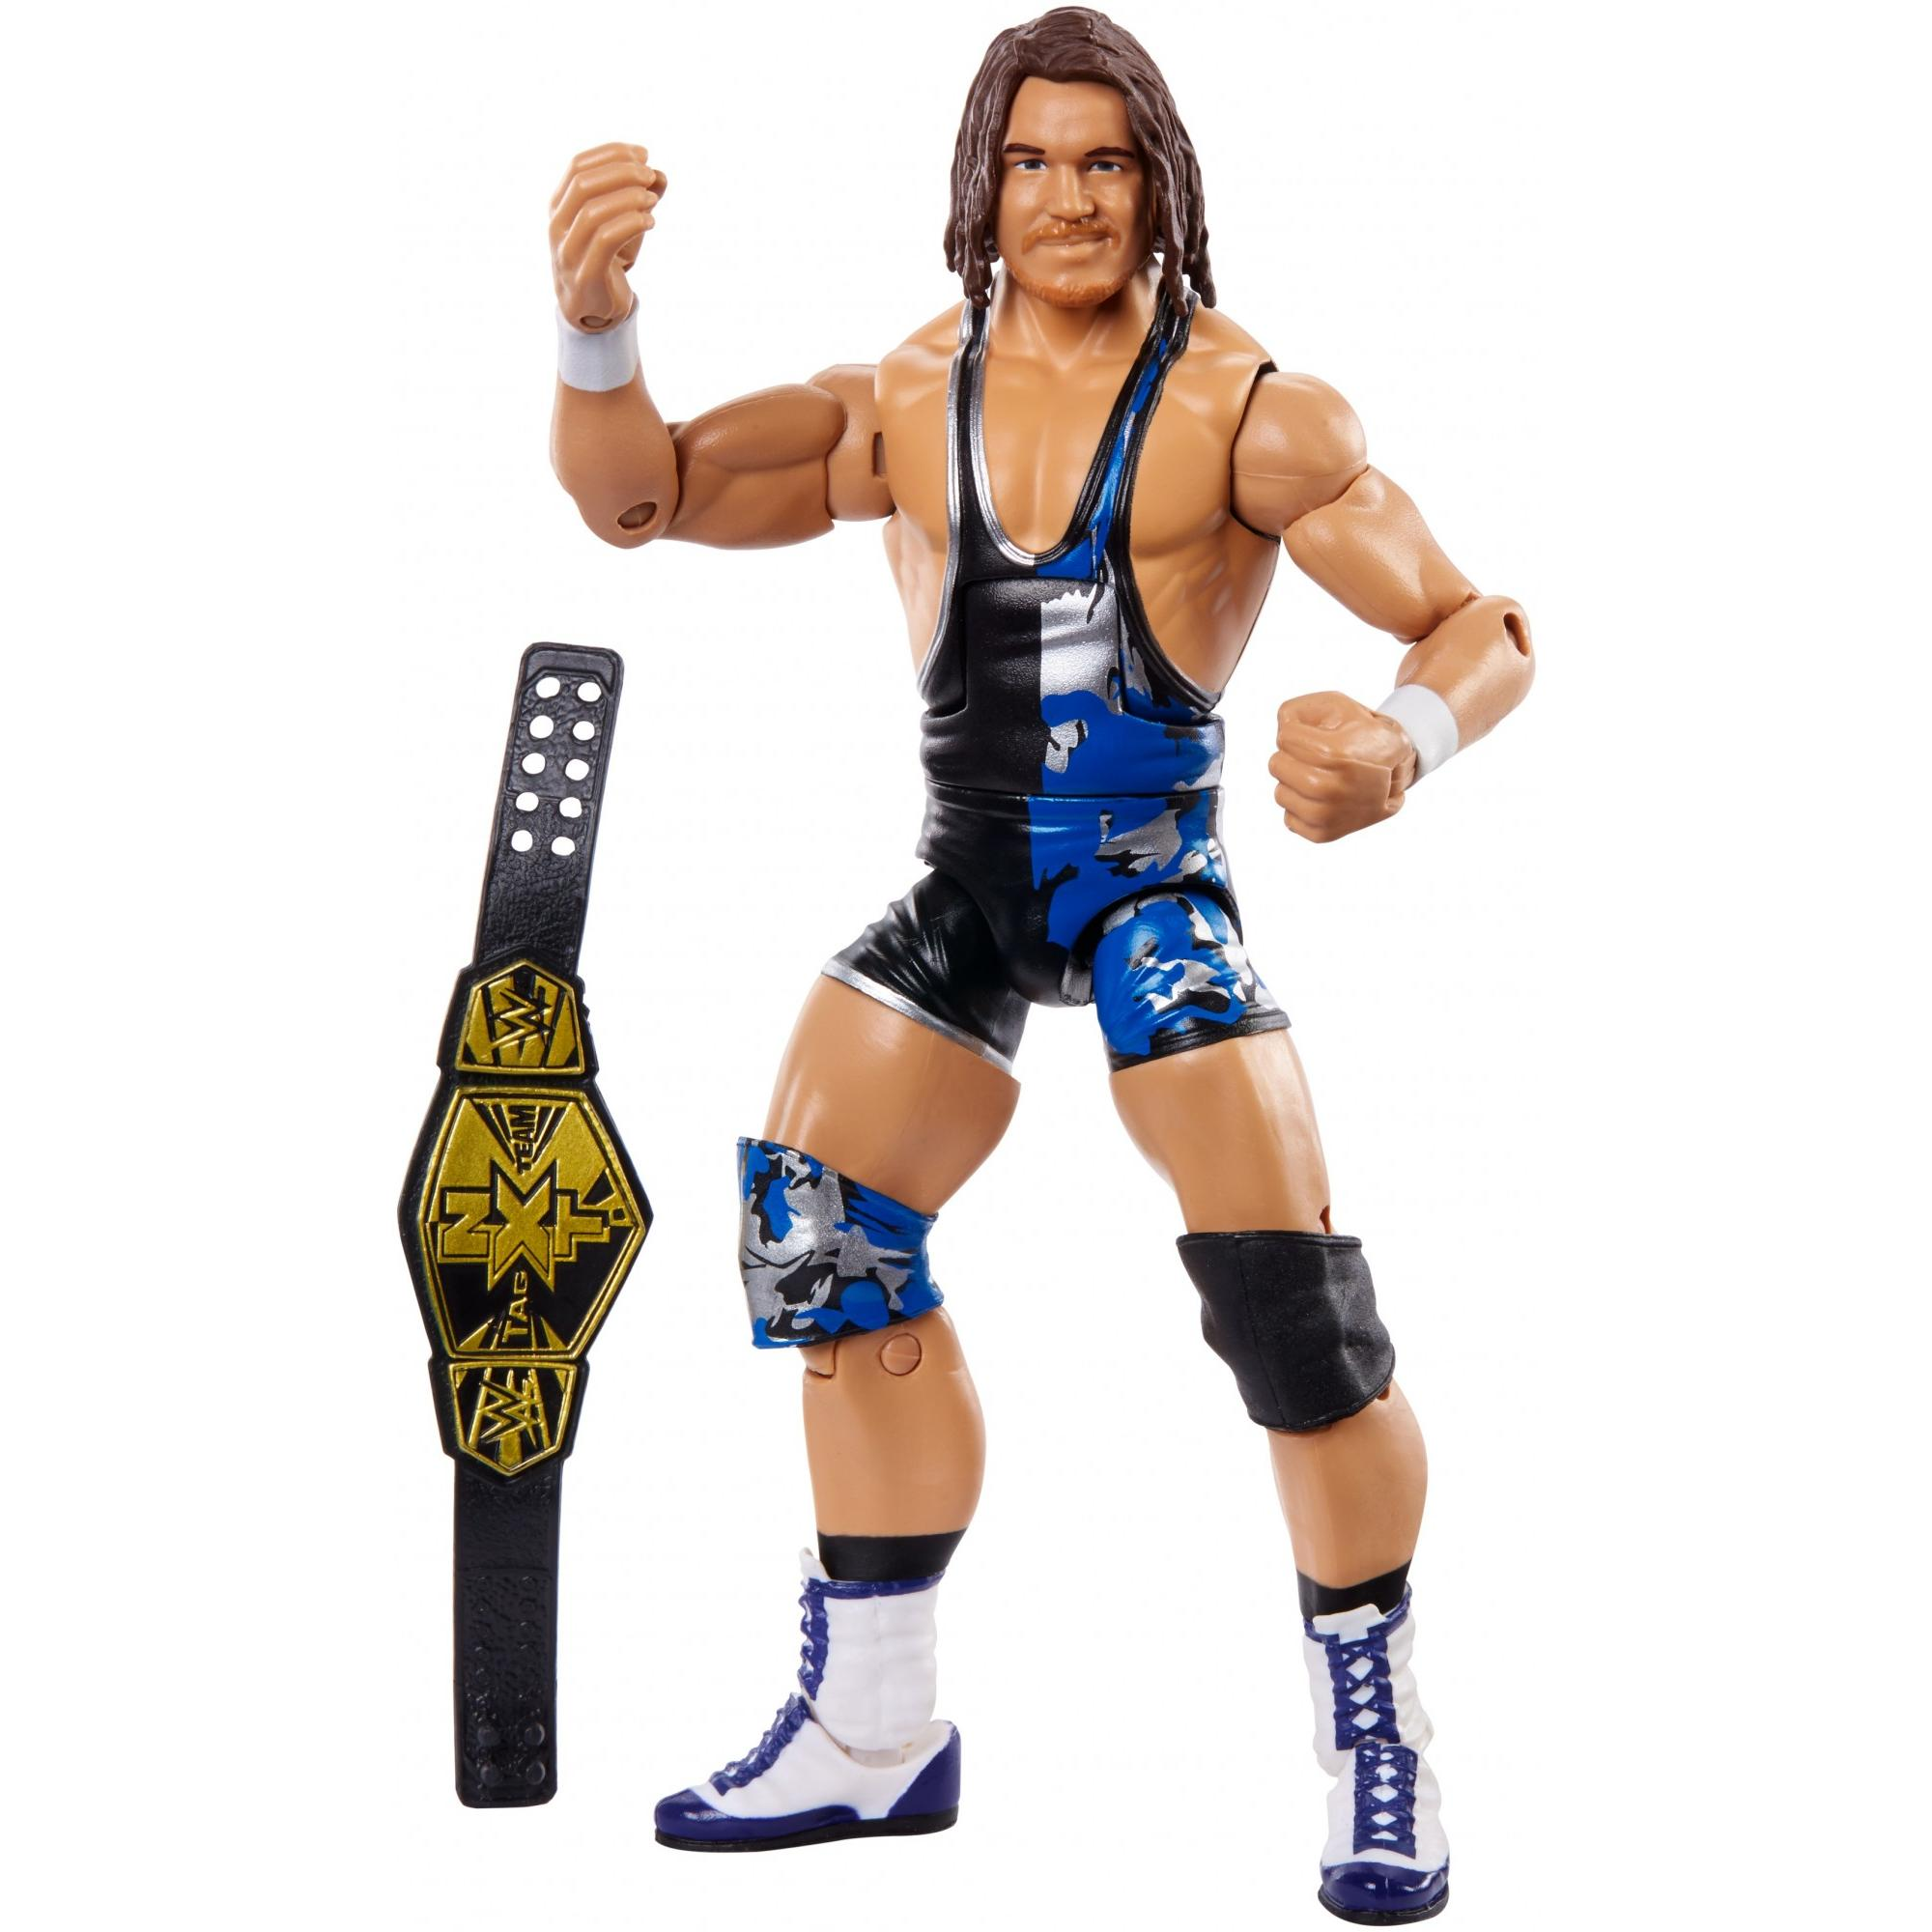 WWE Then, Now & Forever Elite Chad Gable Figure - Walmart.com